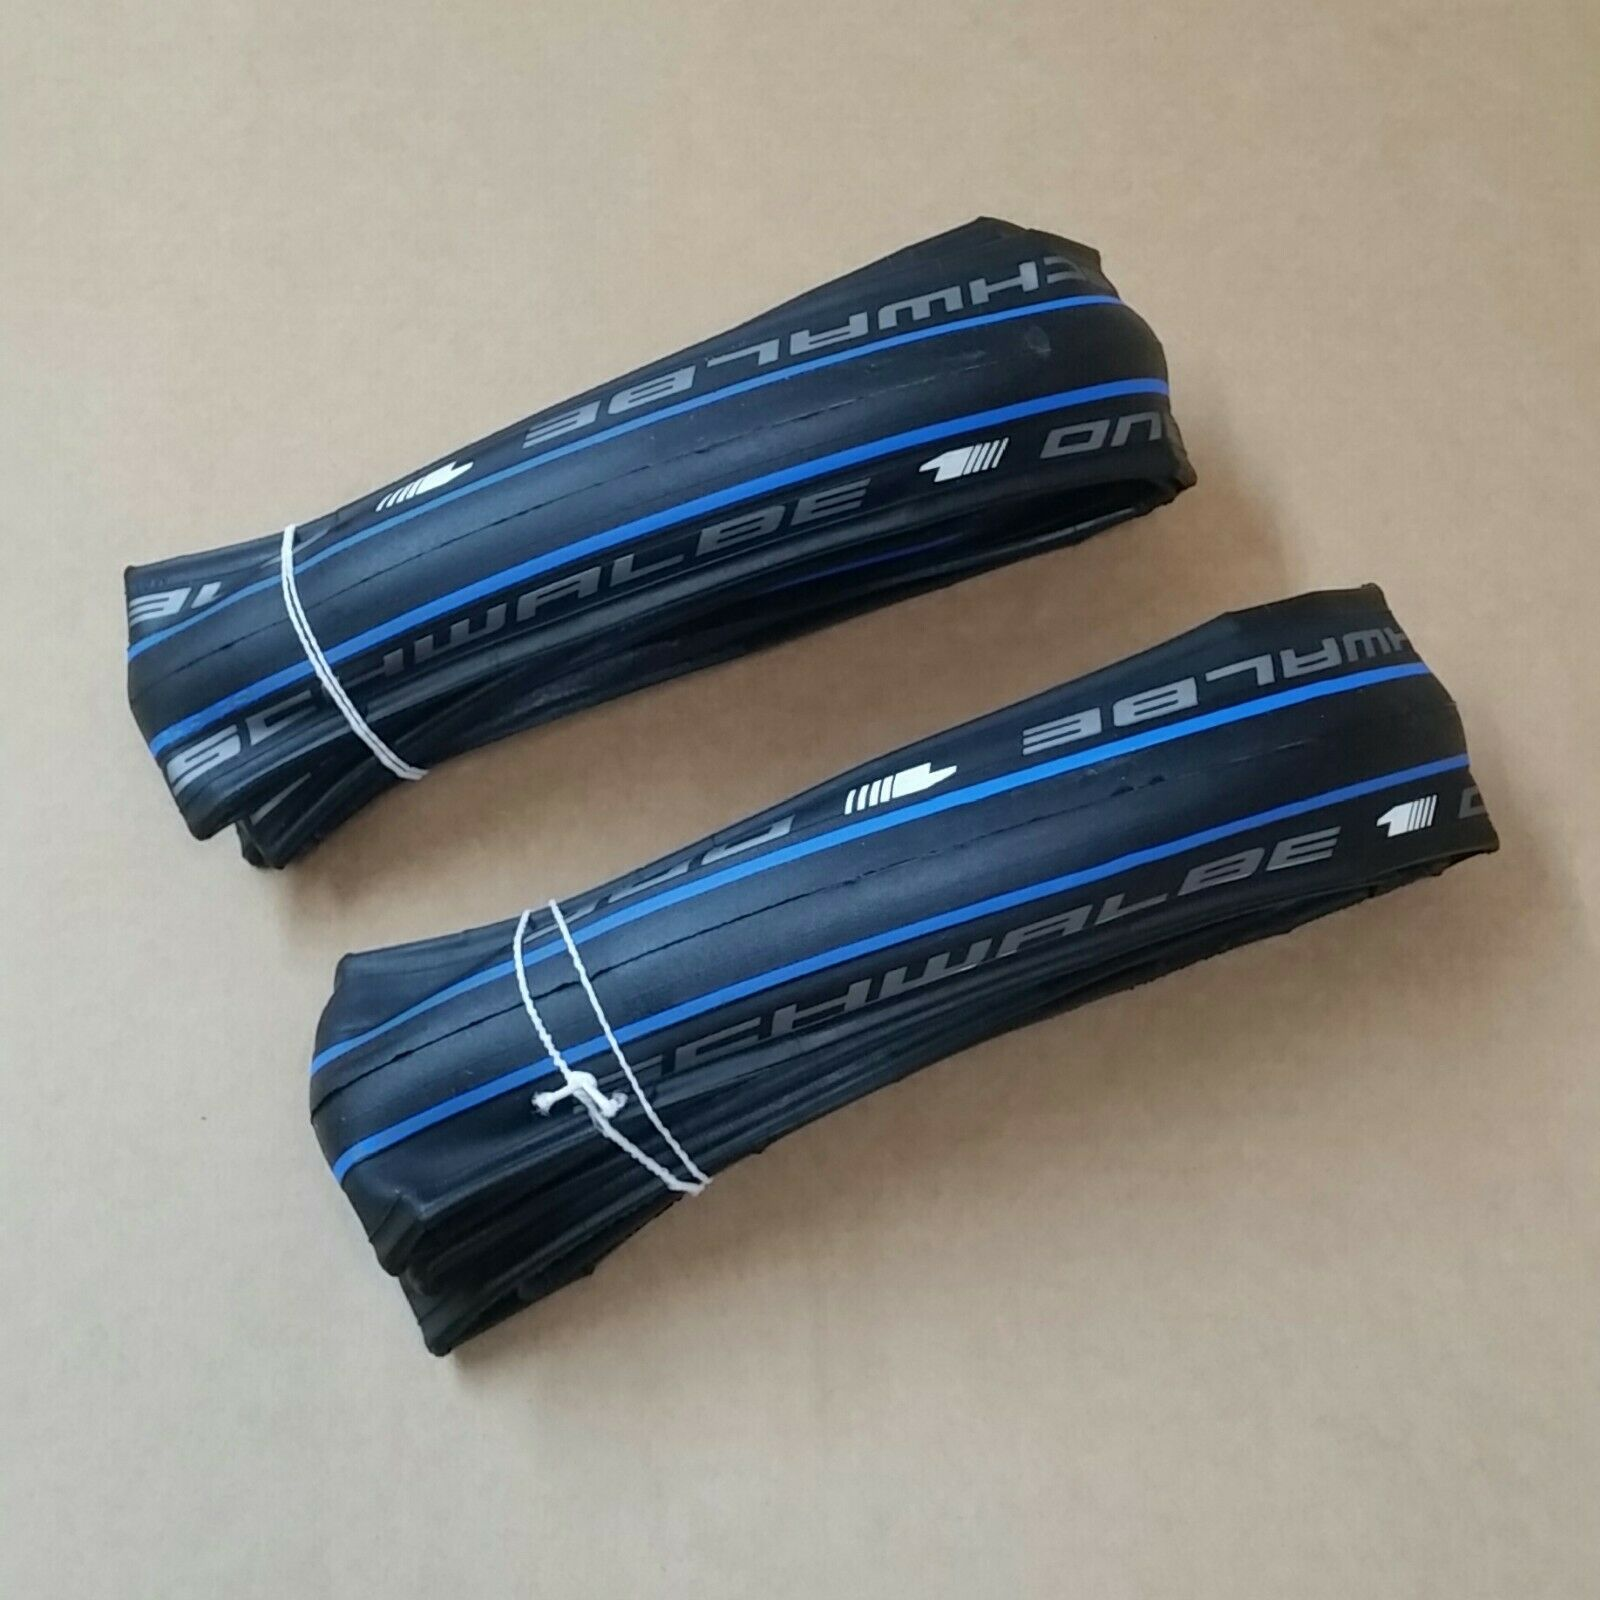 Pair of 700c x 23mm Schwalbe  One V-Guard Road Bike Tyres HS448 bluee Stripe  leisure